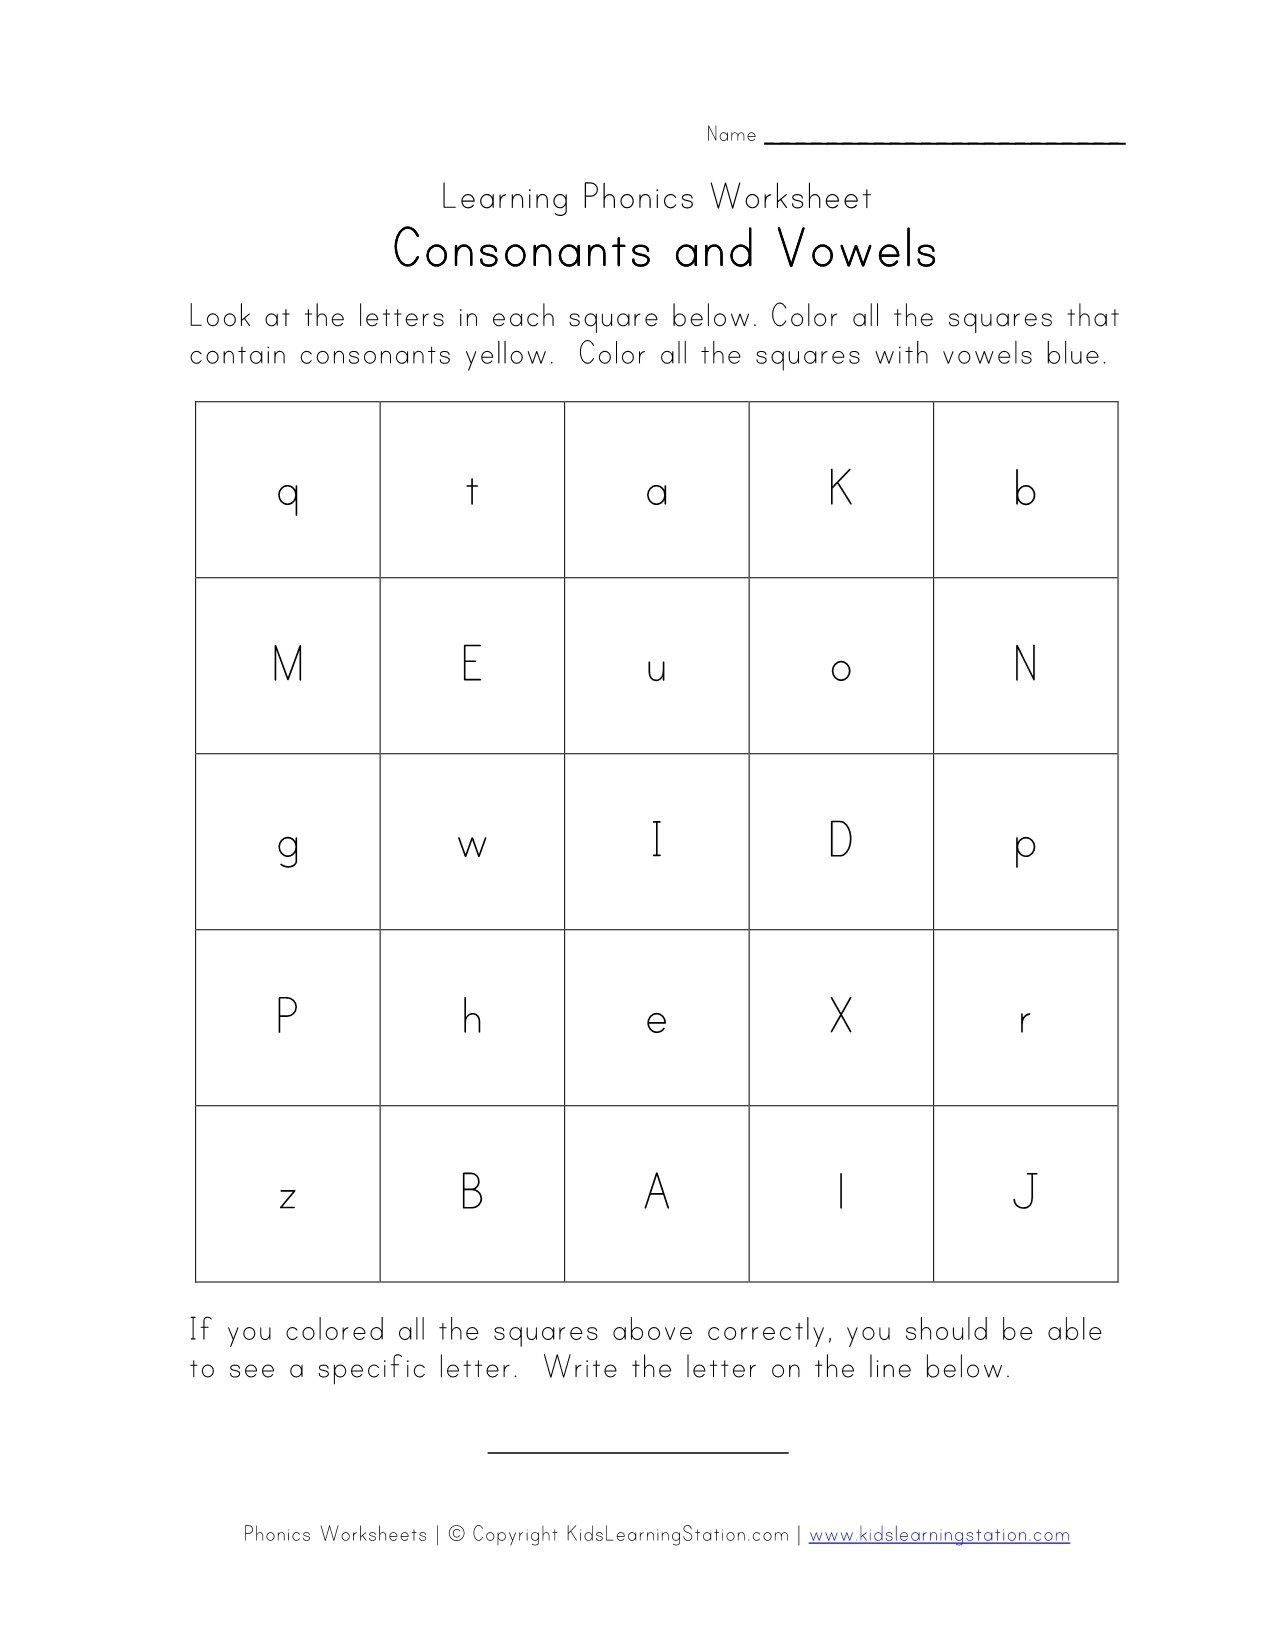 Consonants Vowels Worksheet With Images